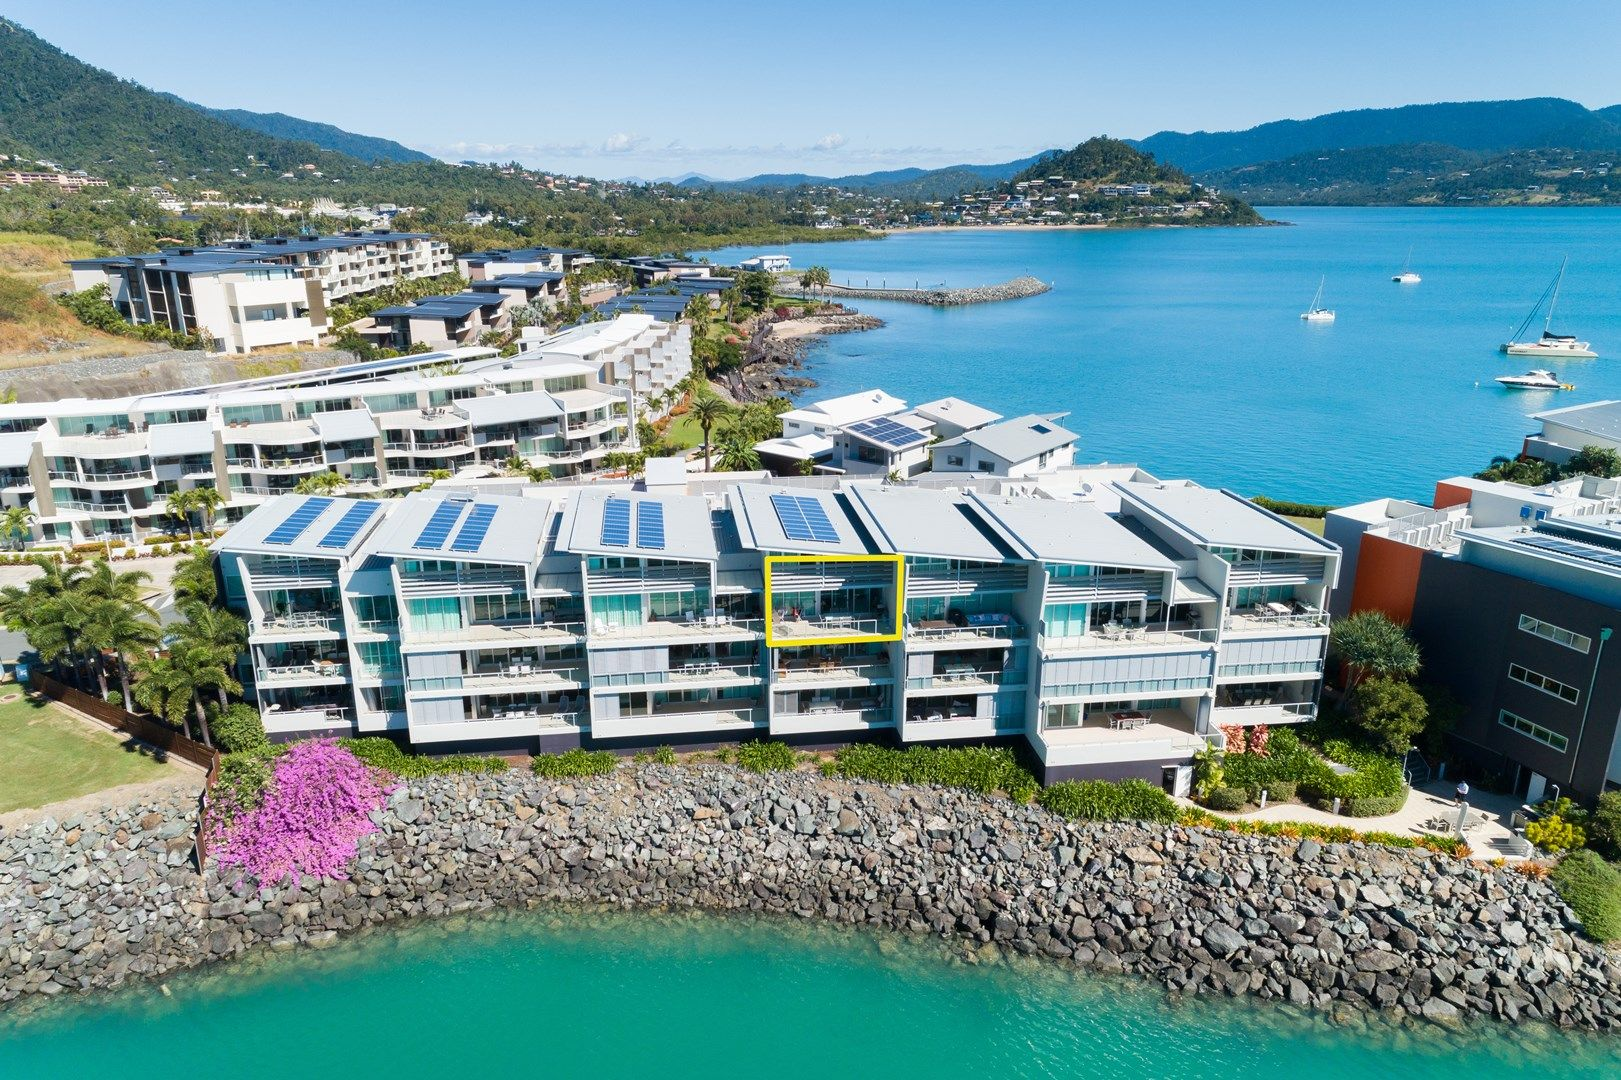 18/144 Shingley Drive, Airlie Beach QLD 4802, Image 0